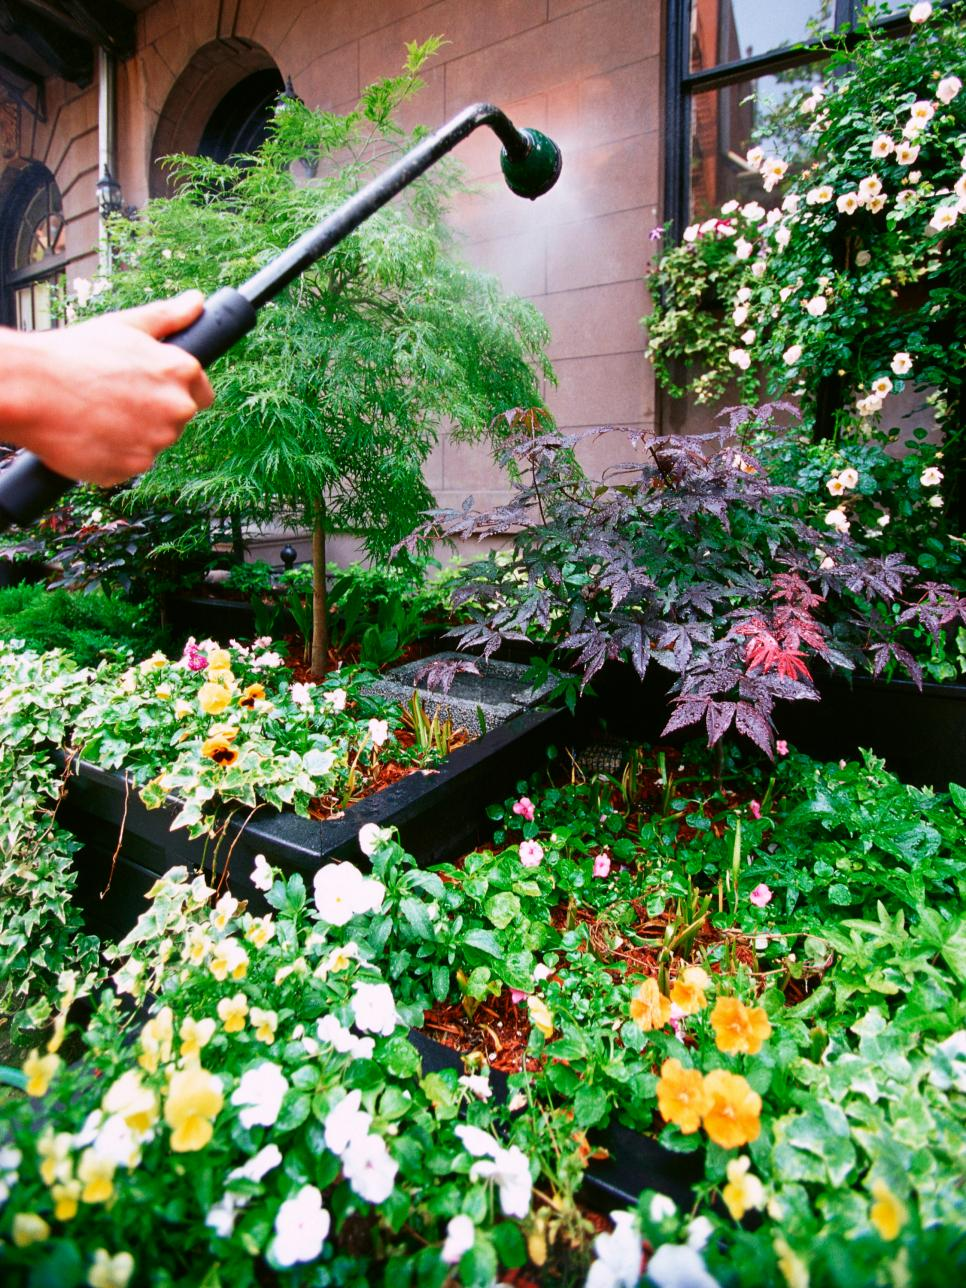 Landscaping Diy Guides : Care and maintenance for hoses sprinklers diy